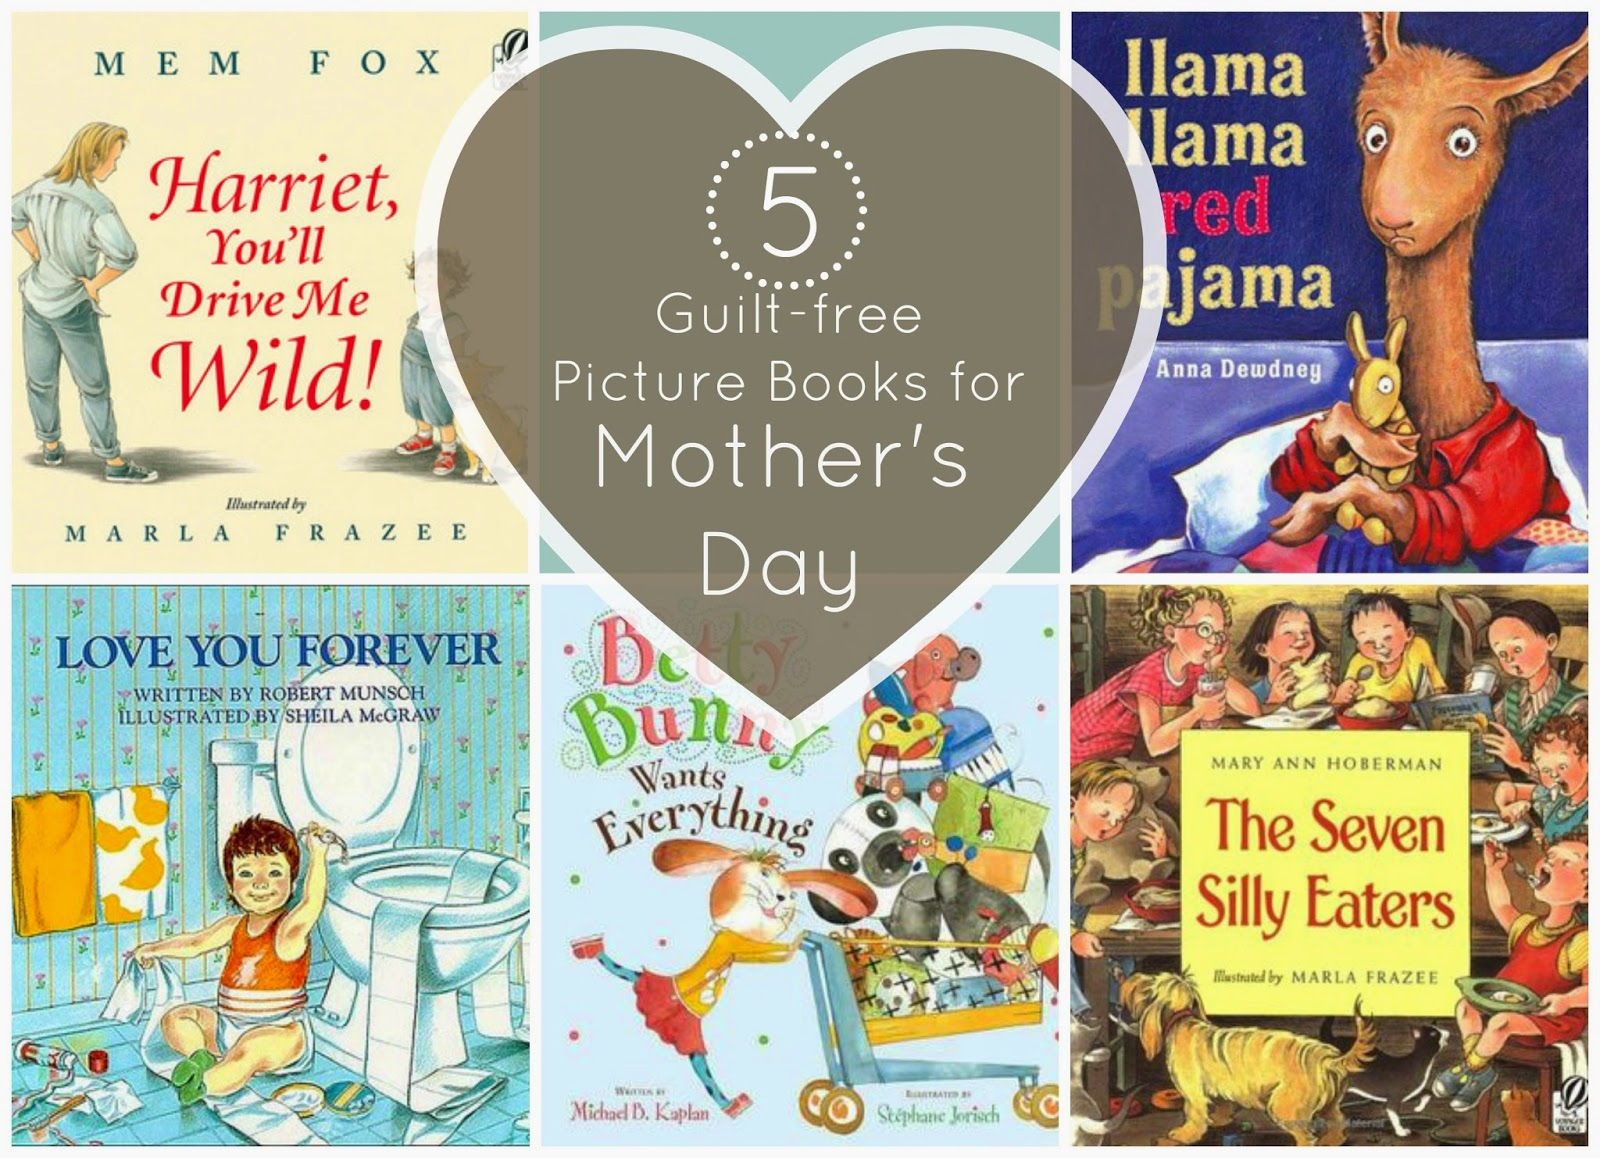 Here are five picture books that won't make you feel guilty about the stress and drama that accompany motherhood.